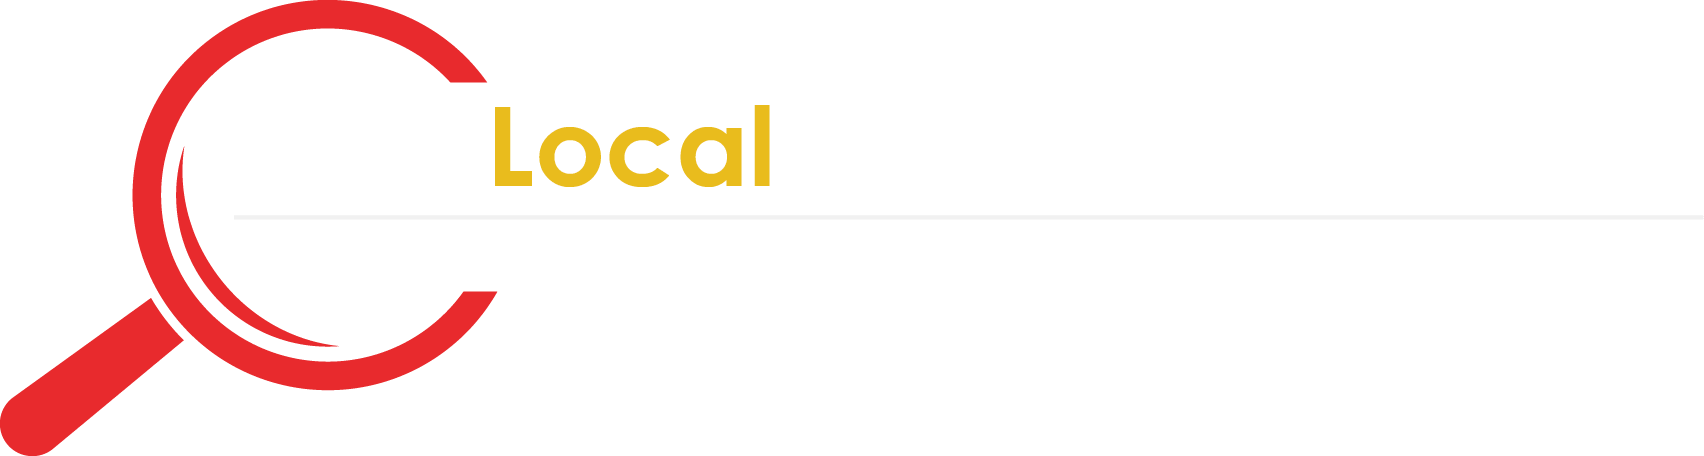 Find Local HVAC Specialist